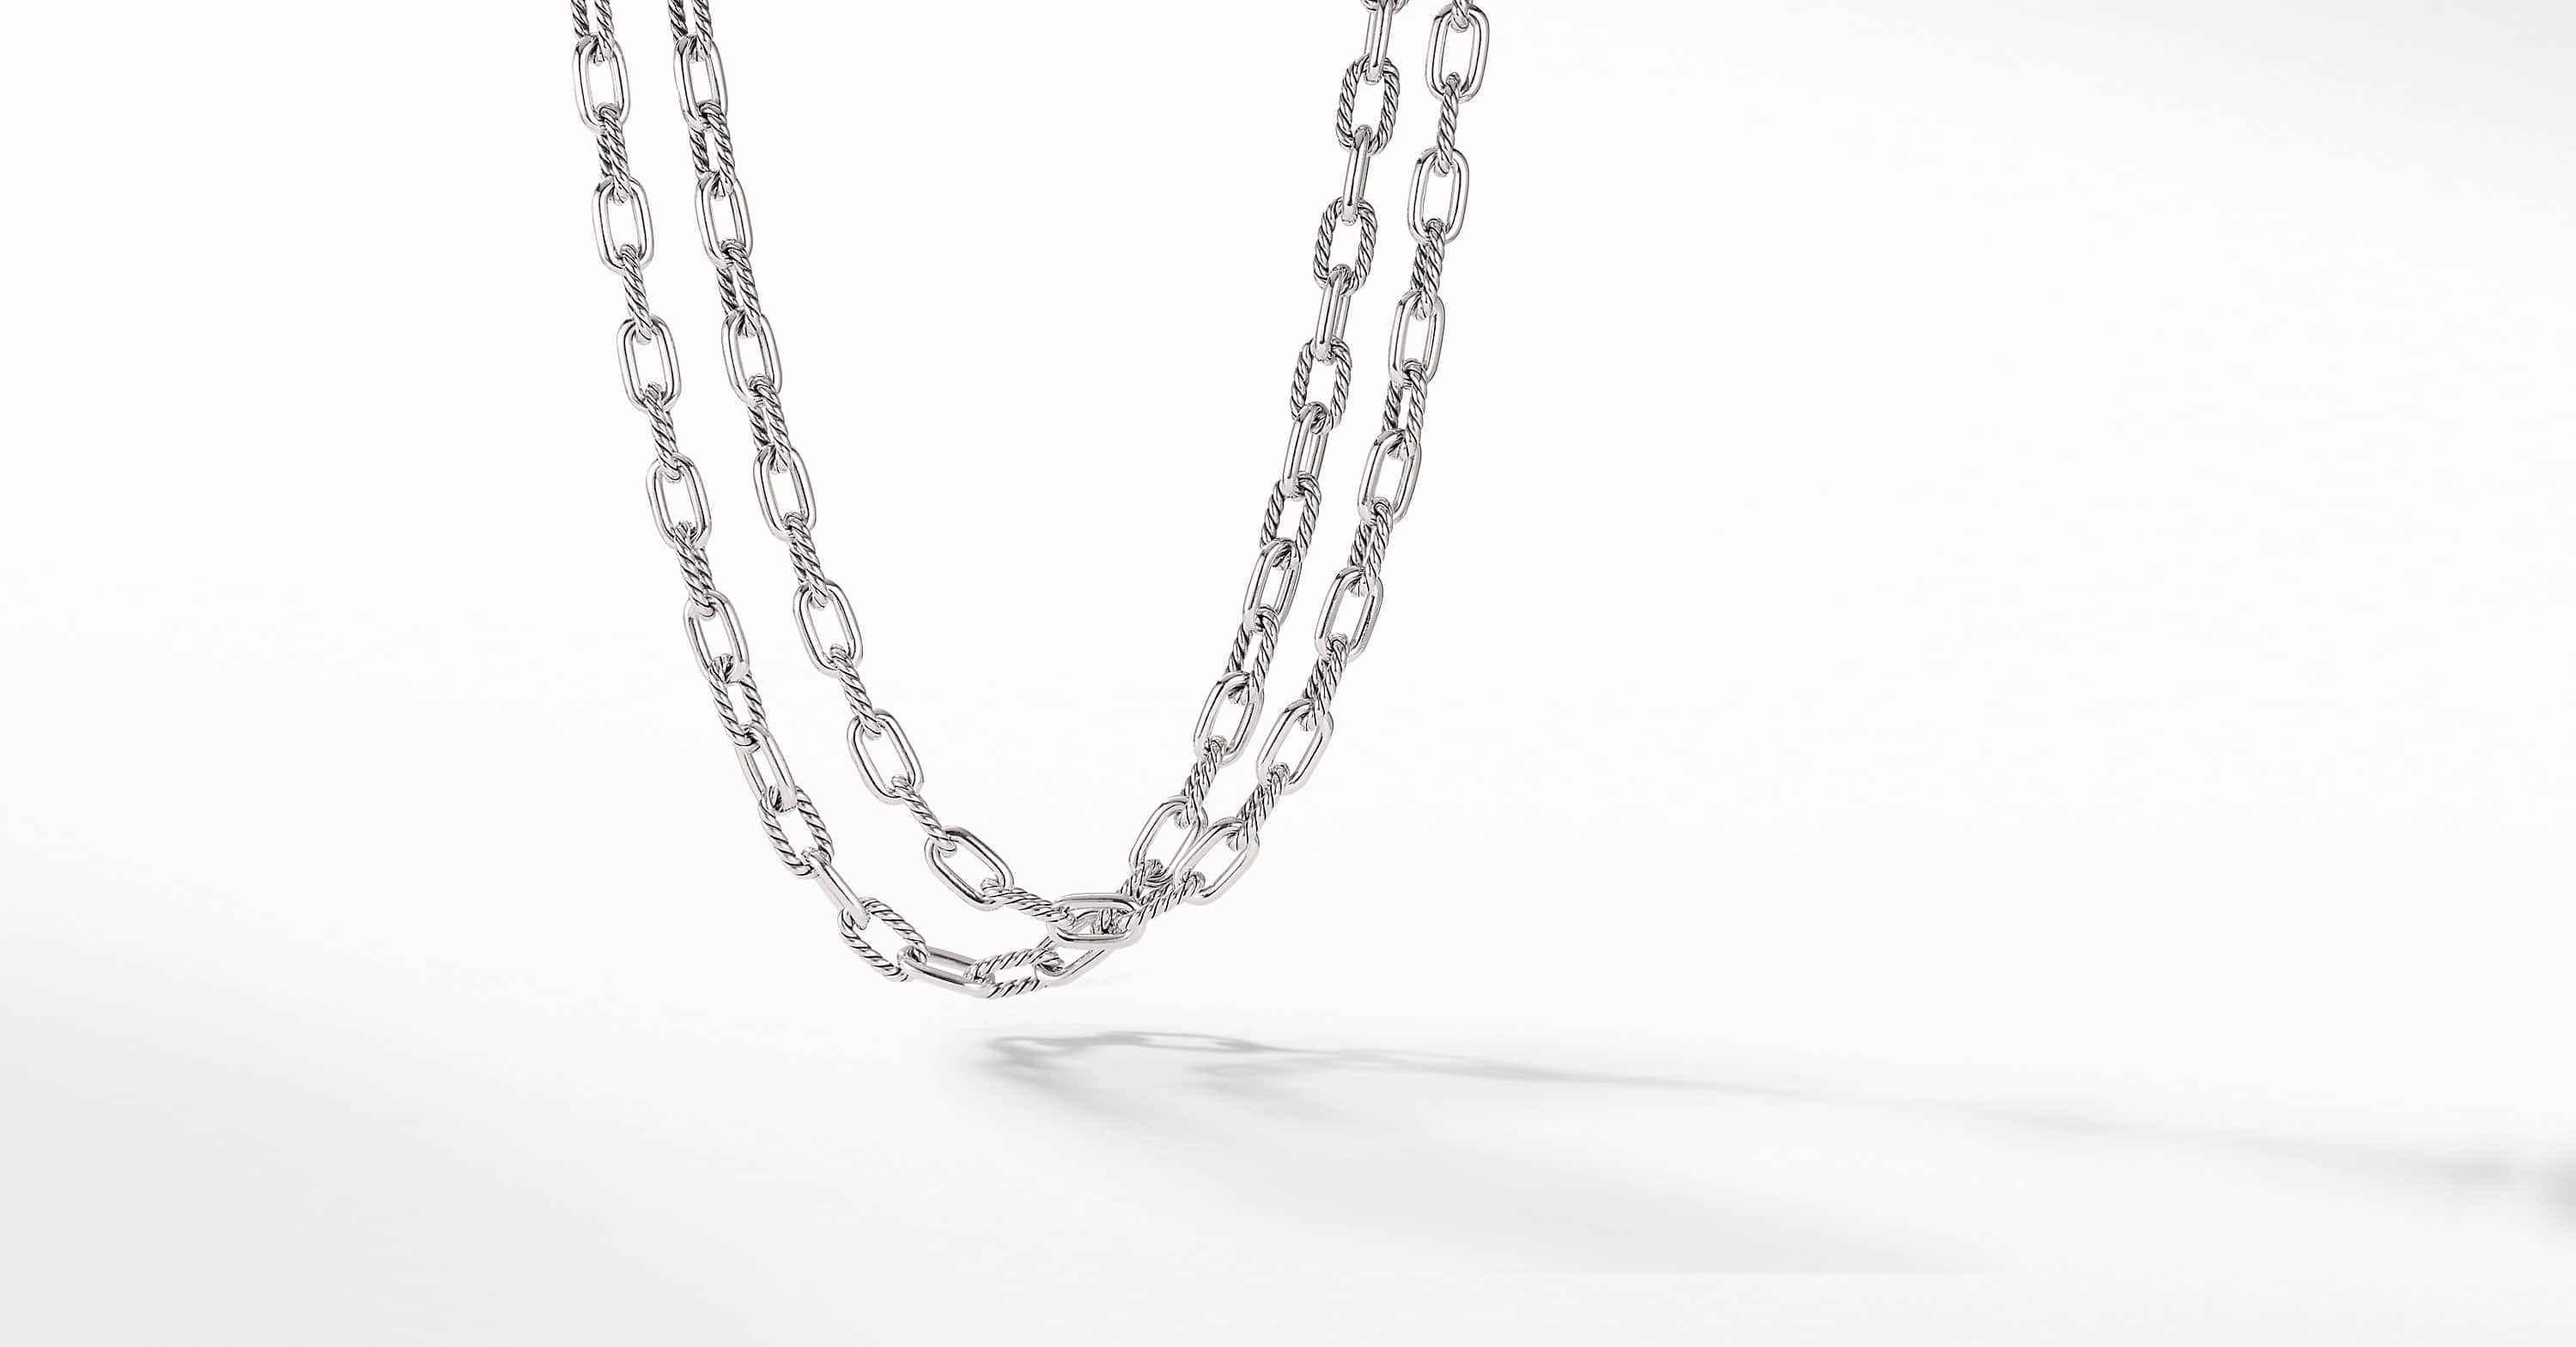 DY Madison Chain Small Necklace, 8.5mm